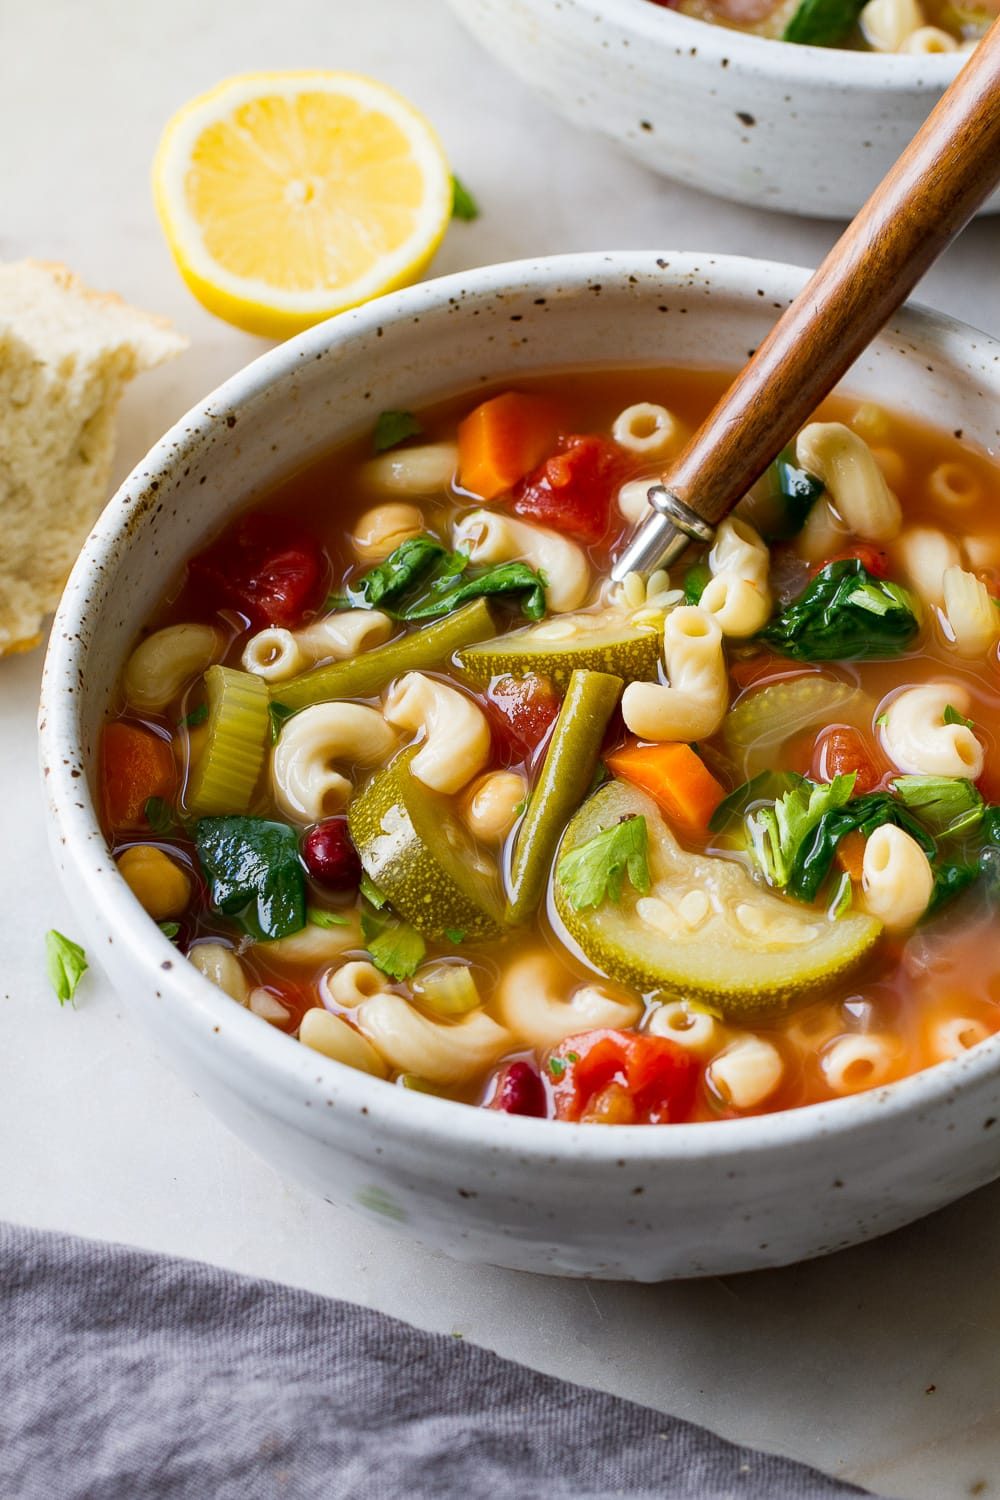 side angle view of healthy vegan minestrone soup in a bowl with wooden spoon.